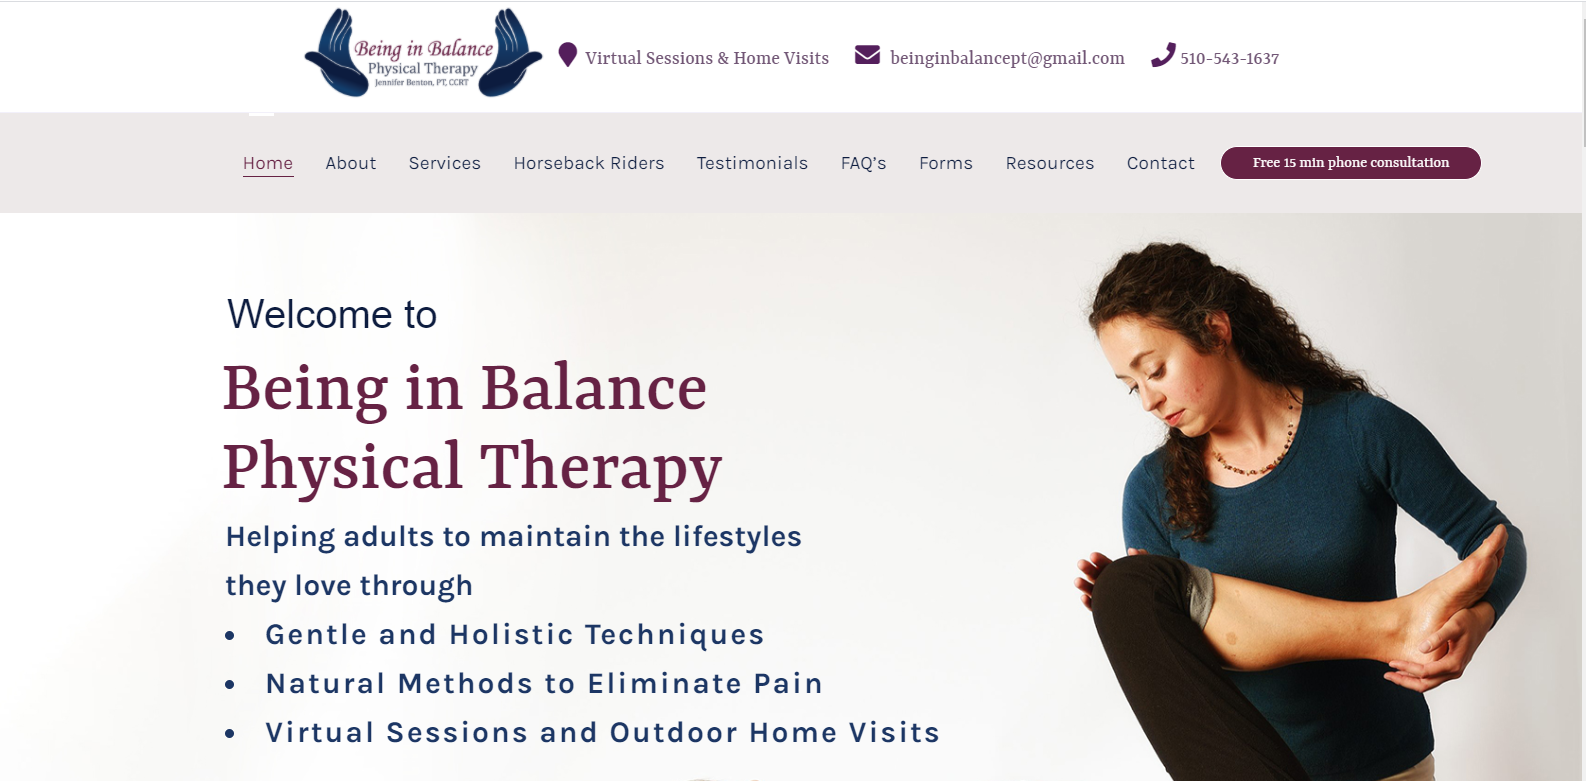 Being in balance Branded website designed by Sheryl Rhoades